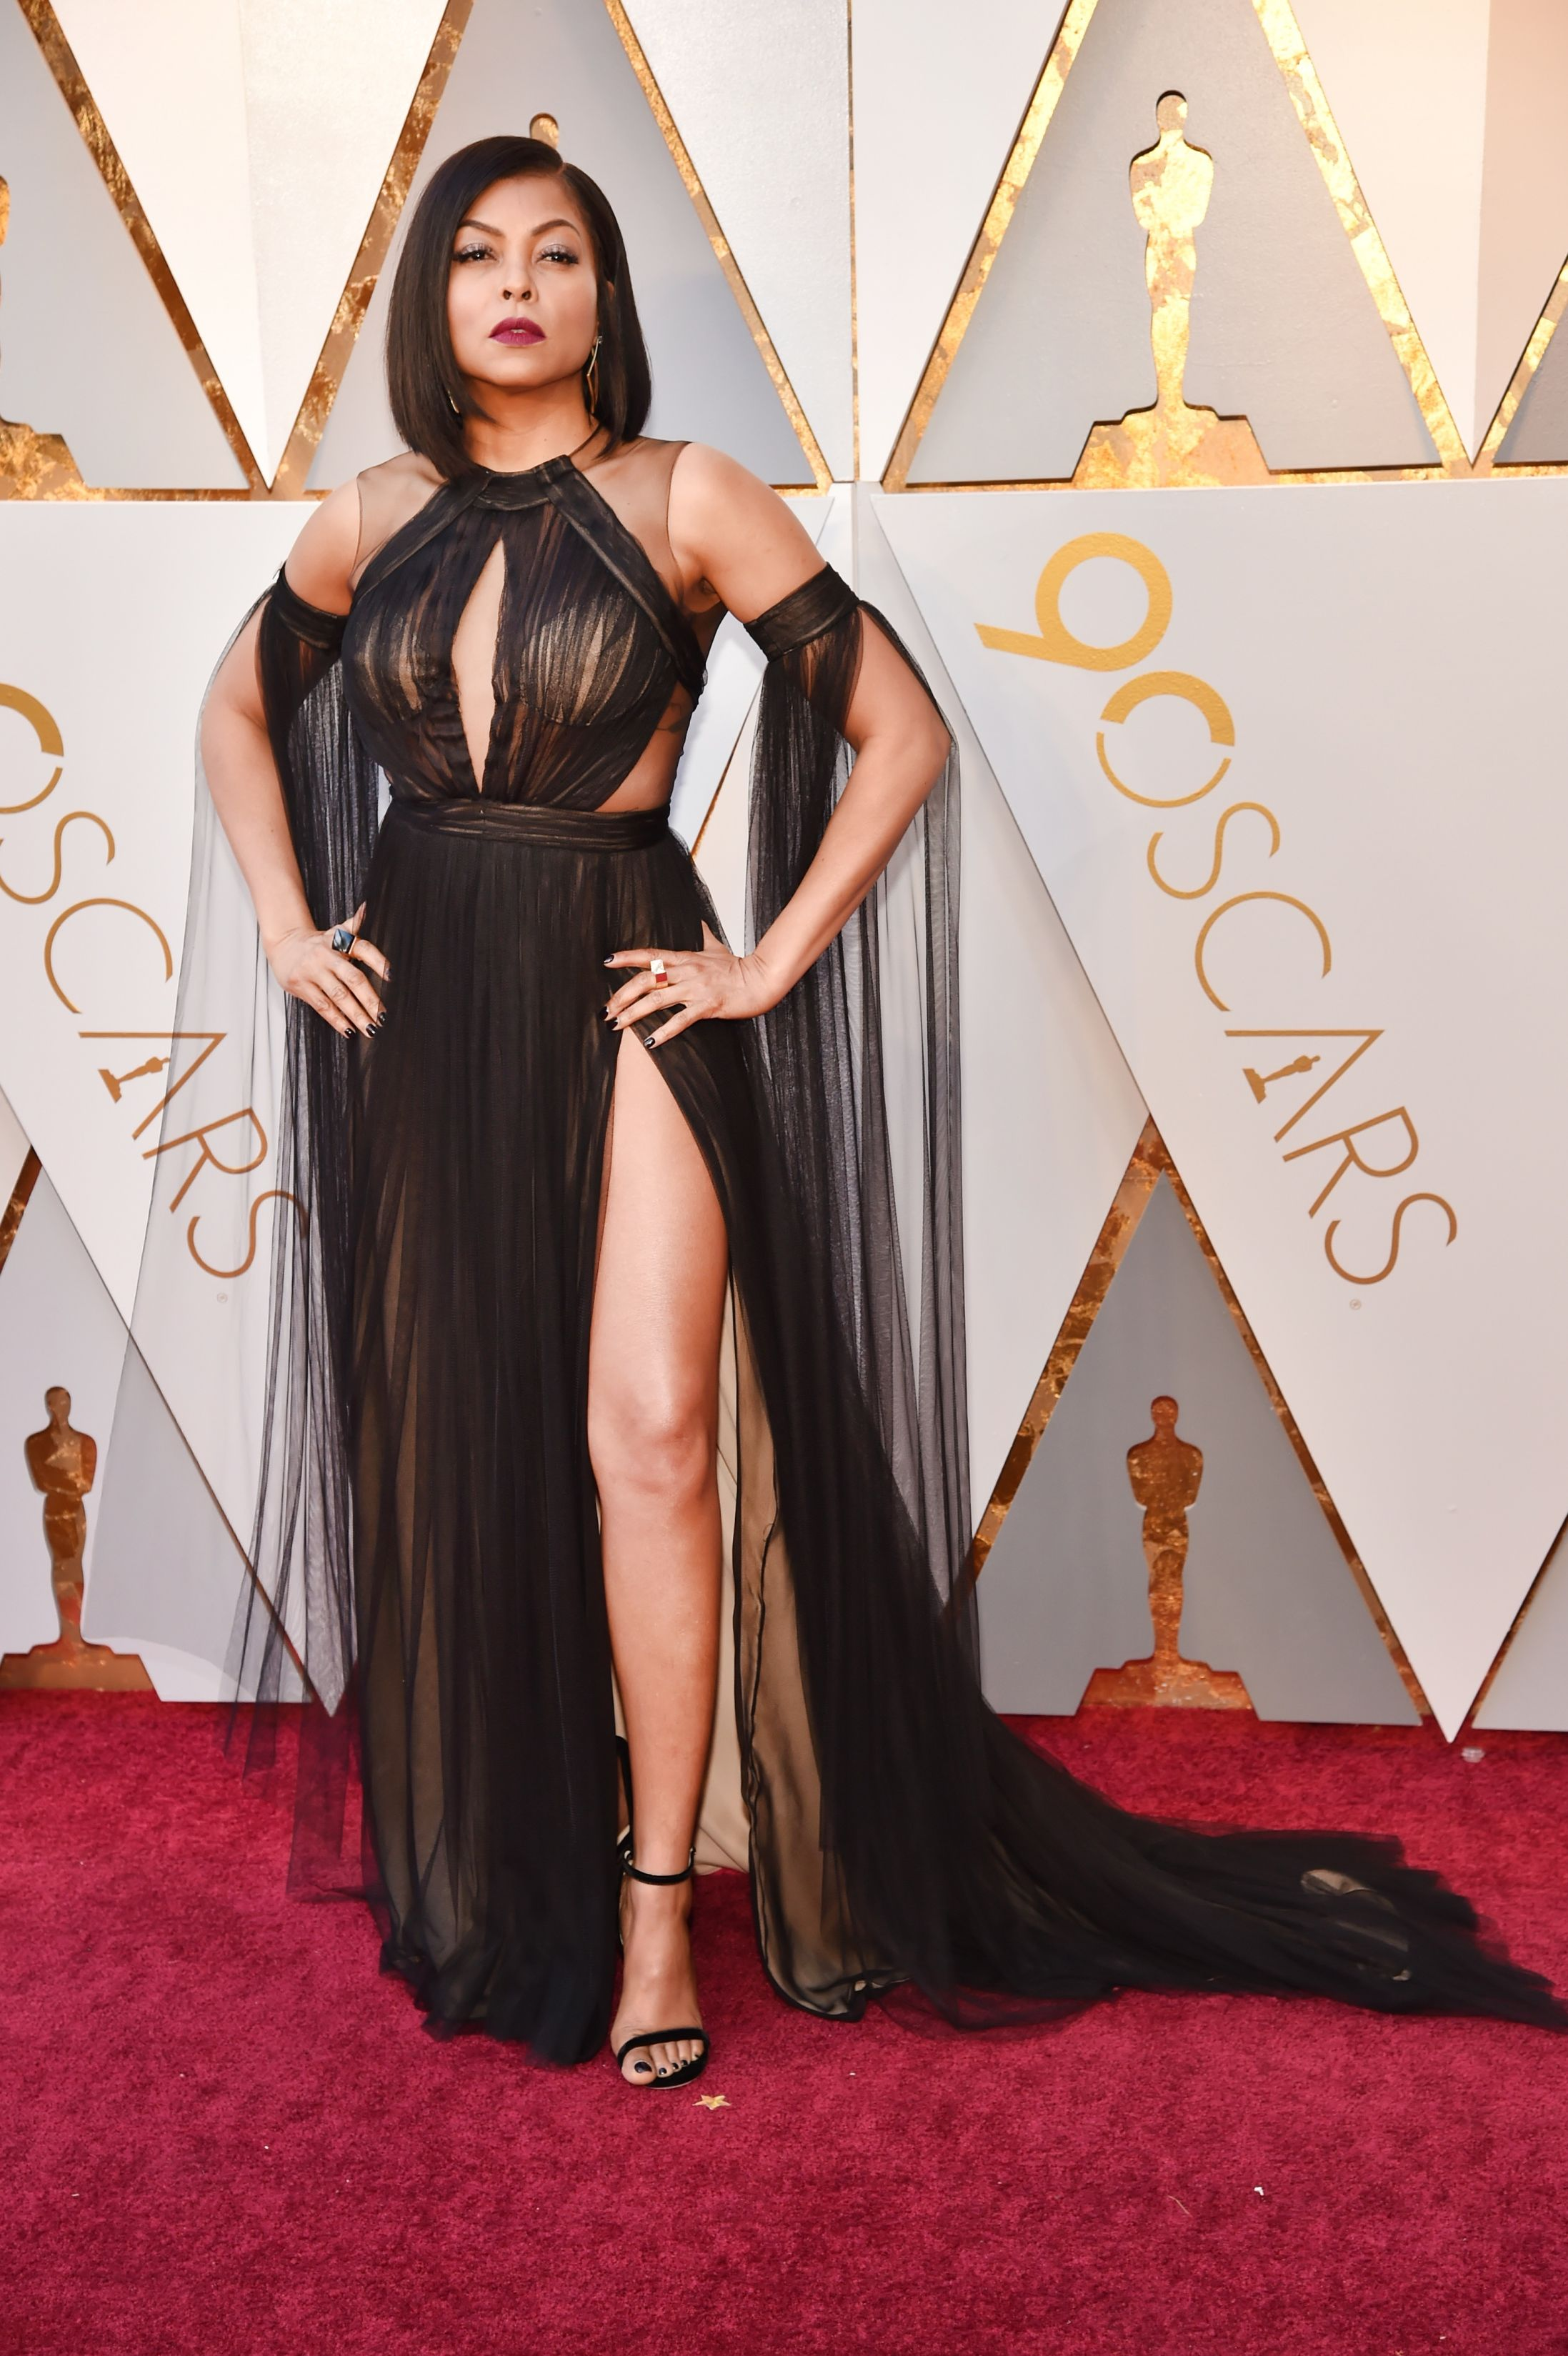 HOLLYWOOD, CA - MARCH 04: Taraji P. Henson attends the 90th Annual Academy Awards at Hollywood & Highland Center on March 4, 2018 in Hollywood, California. (Photo by Kevin Mazur/WireImage)